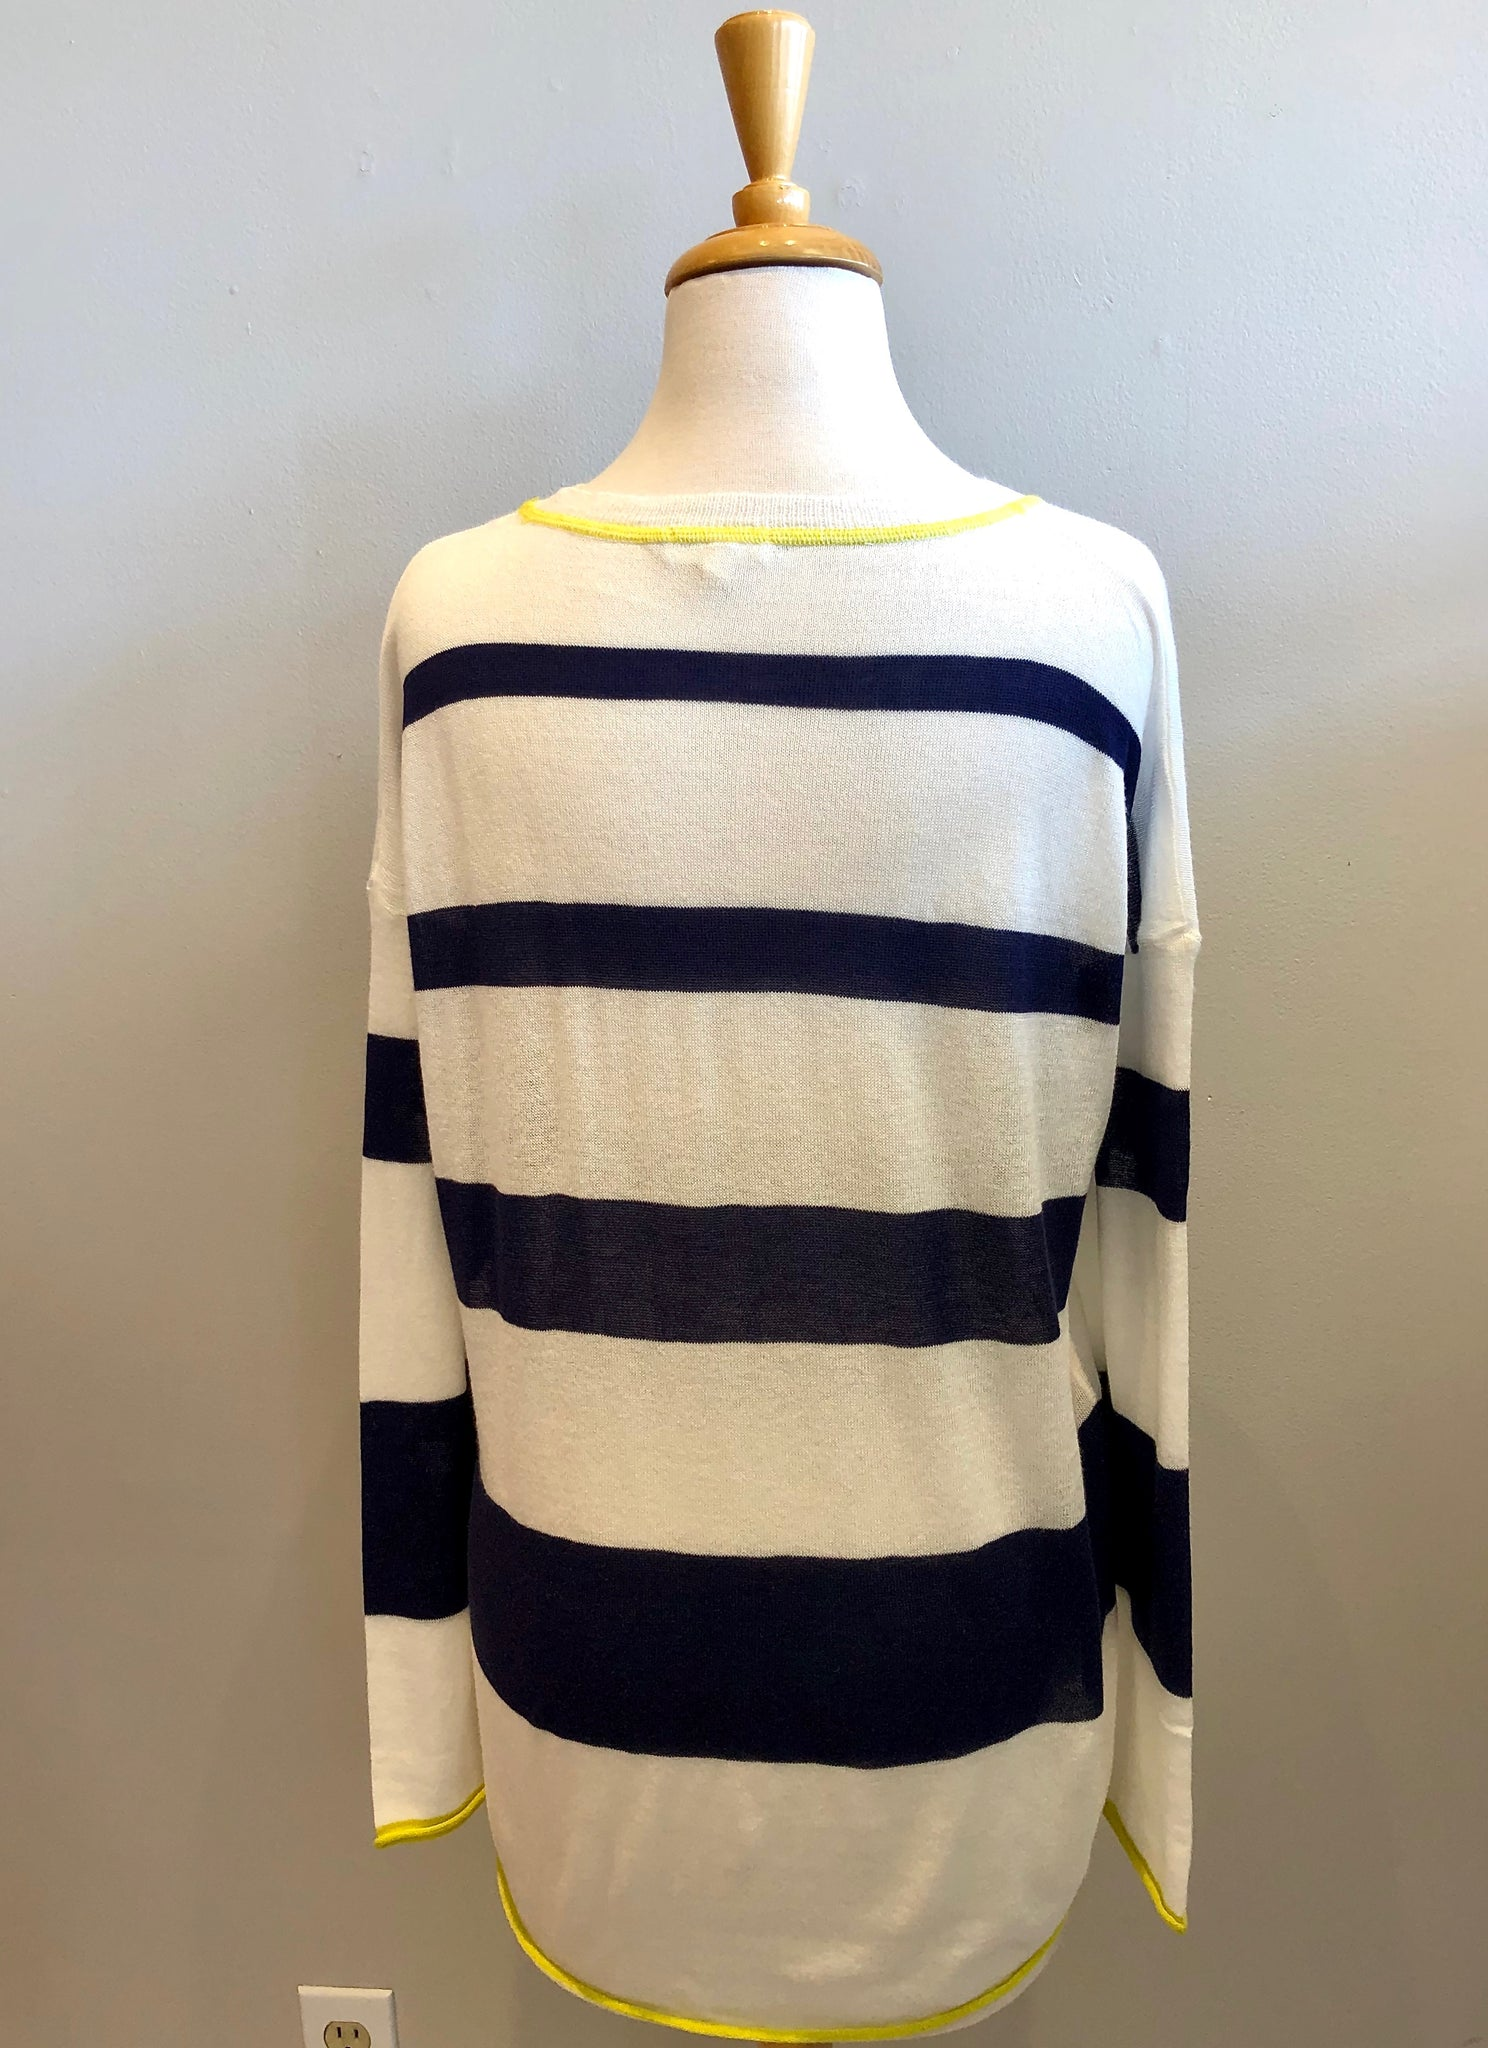 Mystree Reverse Cover Striped Sweater Top - Showroom56